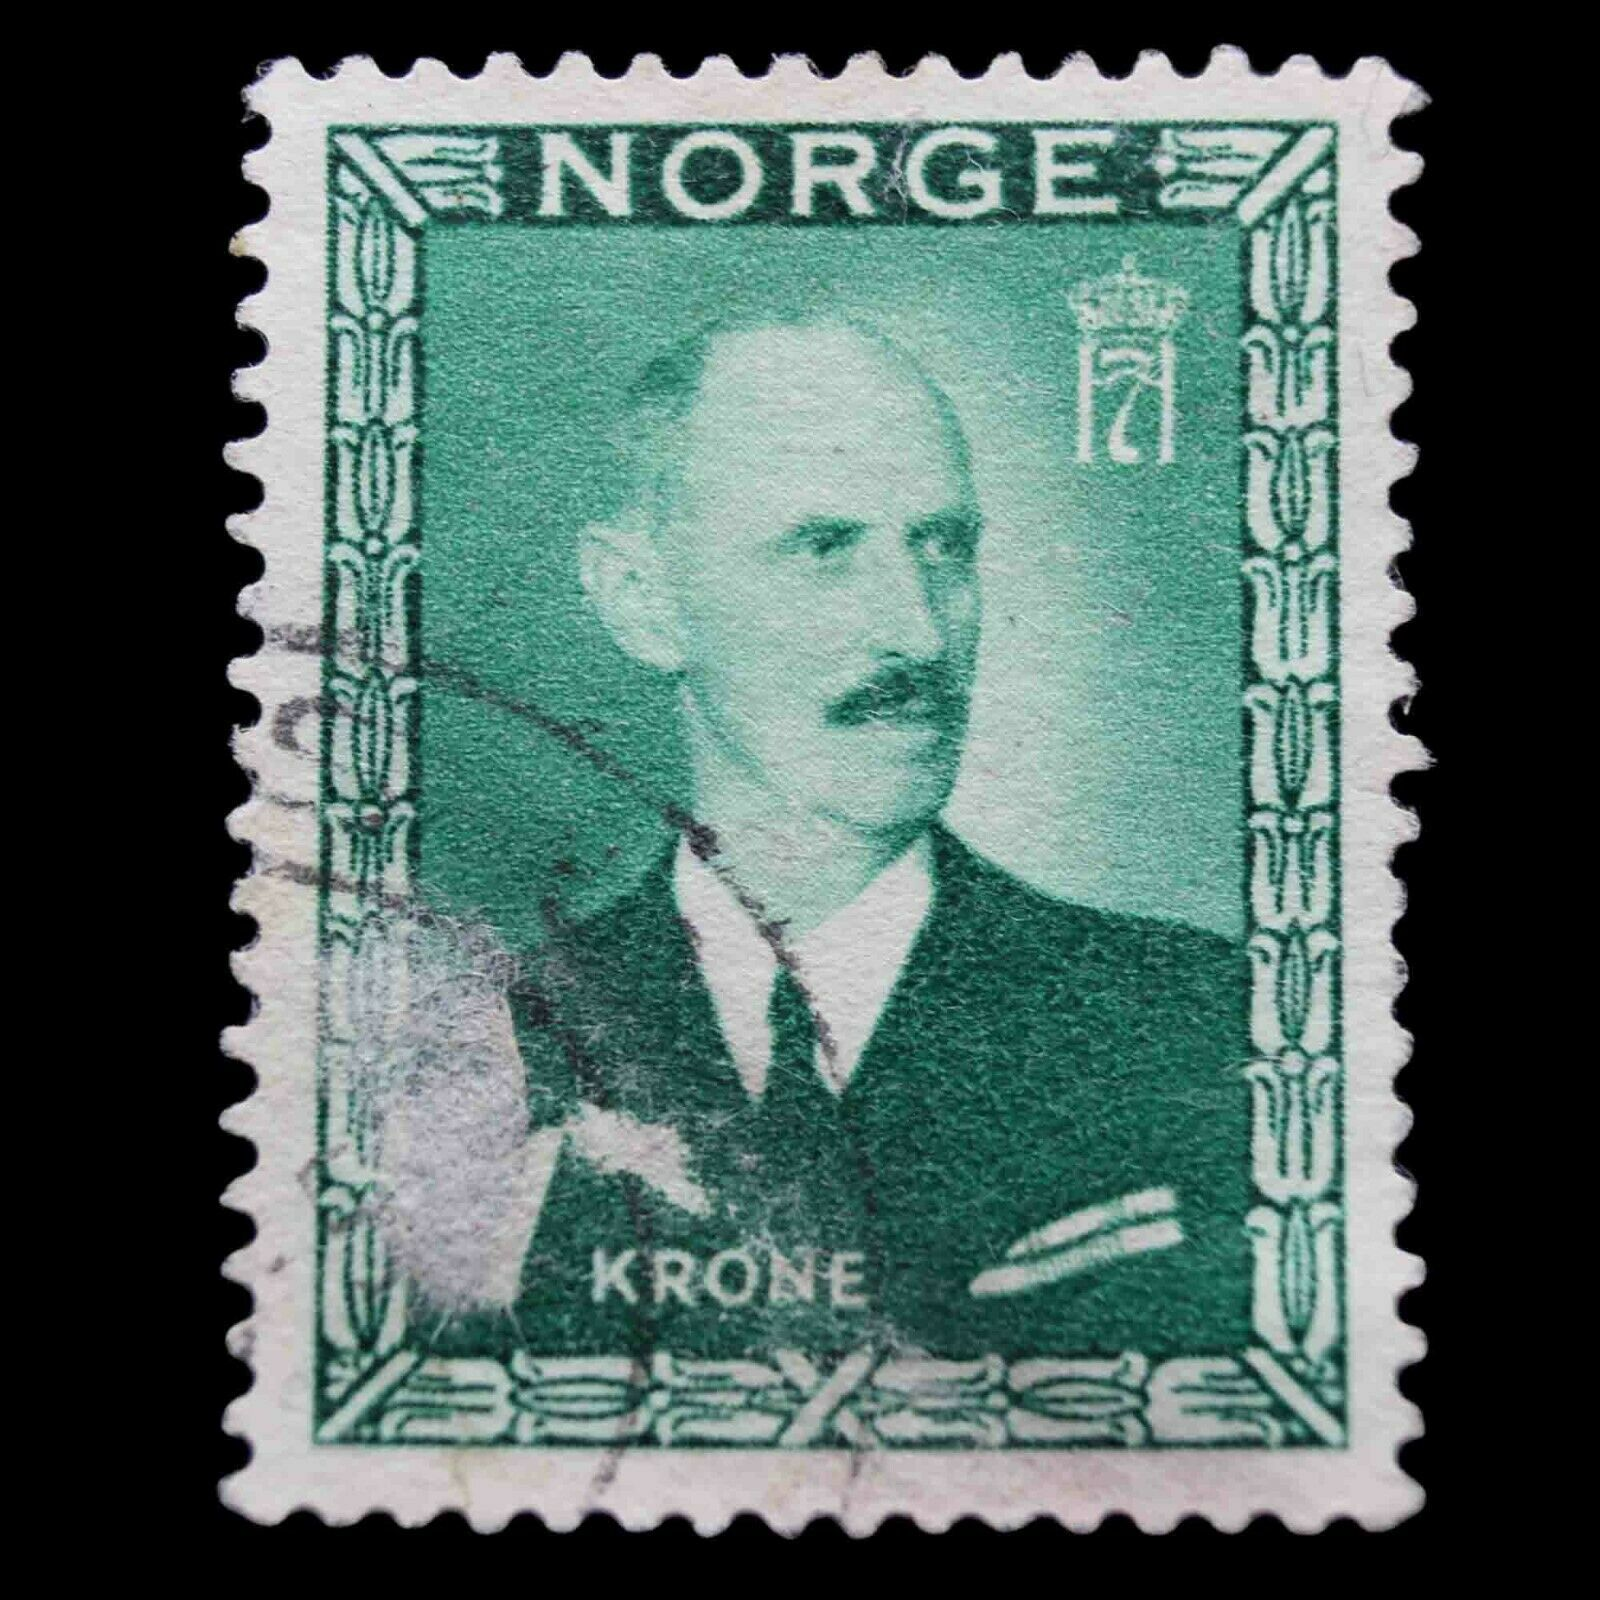 Primary image for Norway 1946 King Haakon VII 1 Krone Used Stamp